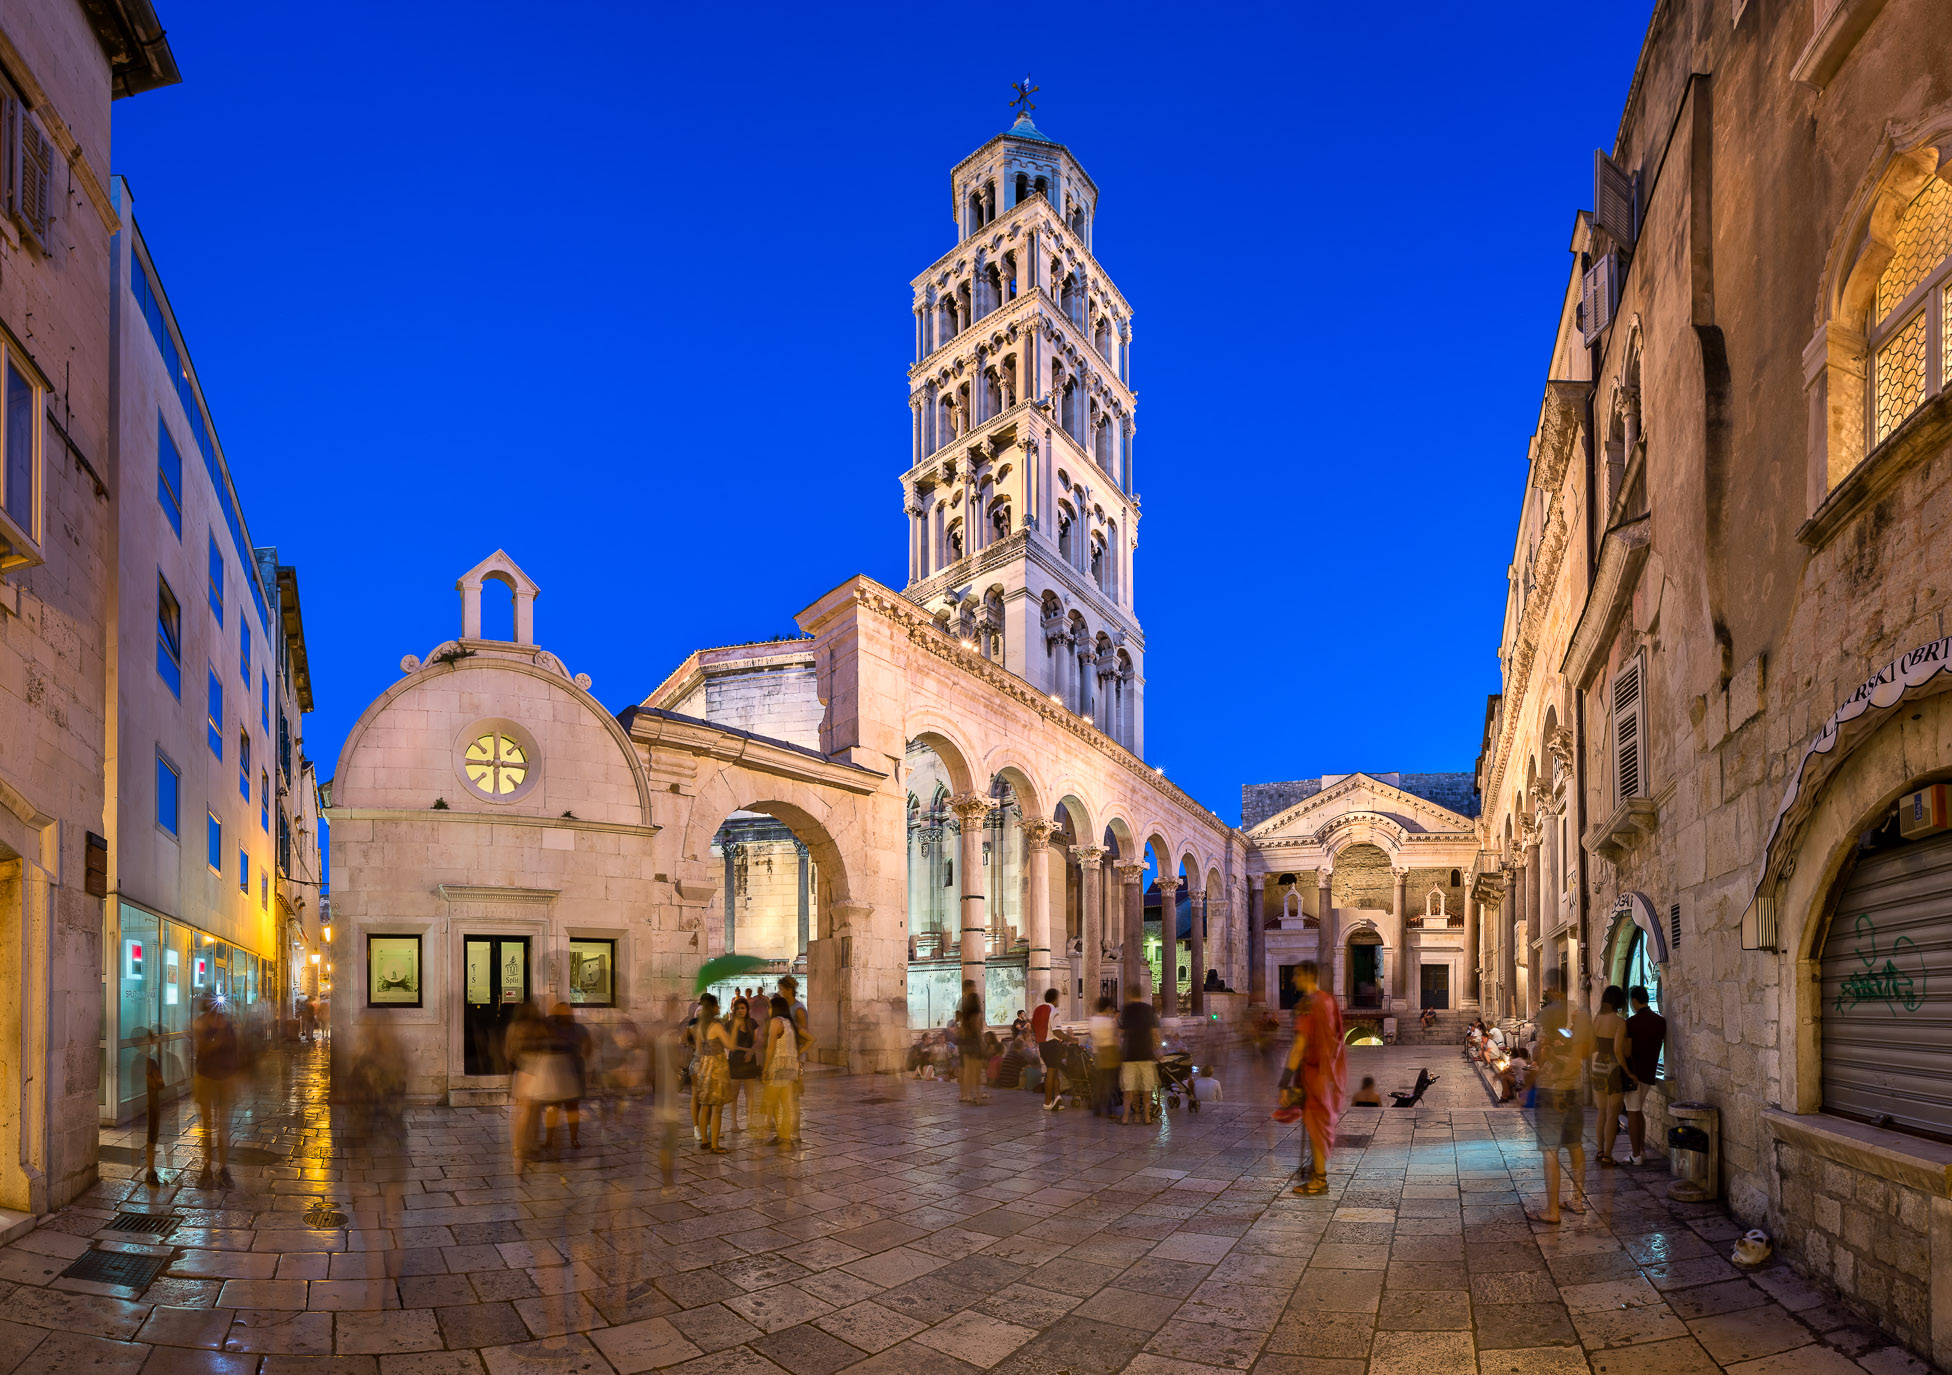 The Peristyle of Diocletian's Palace in Split. Palace was built by emperor Diocletian in preparation for his retirement on 1 May 305 AD.